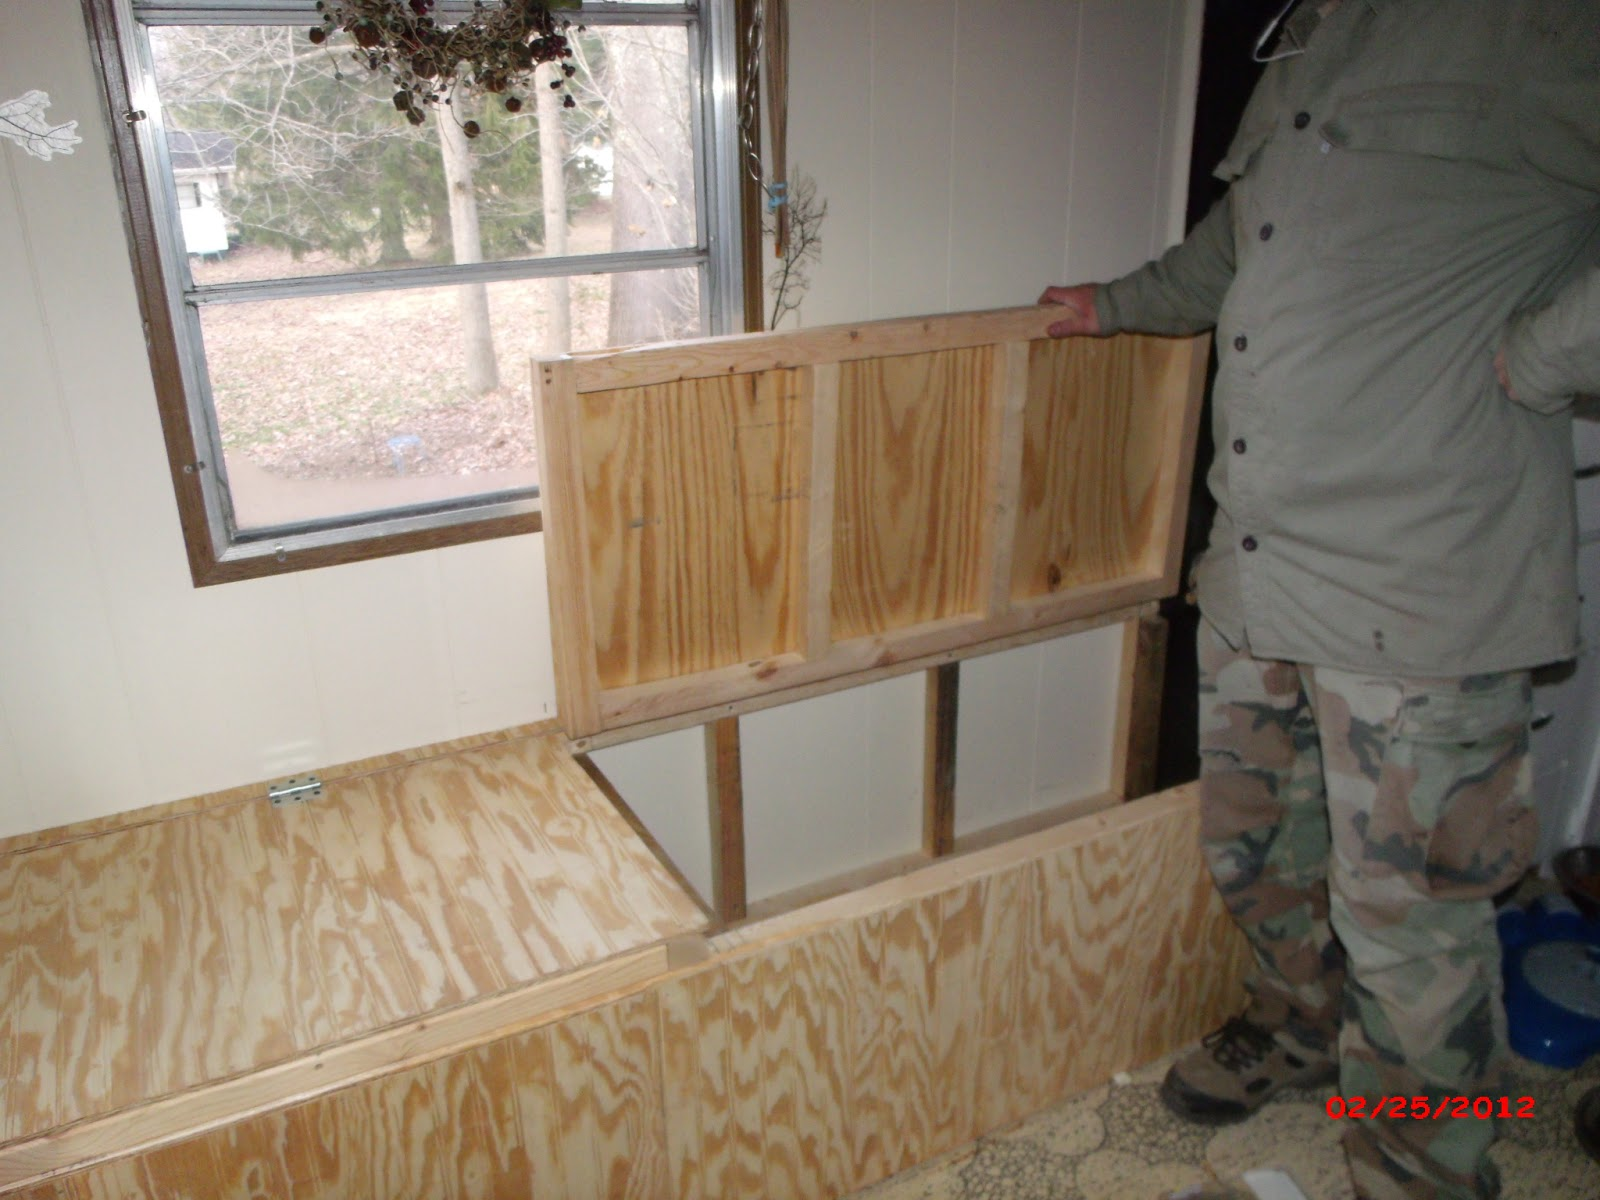 Creating Storage In A Mobile Home Our New Window Seat